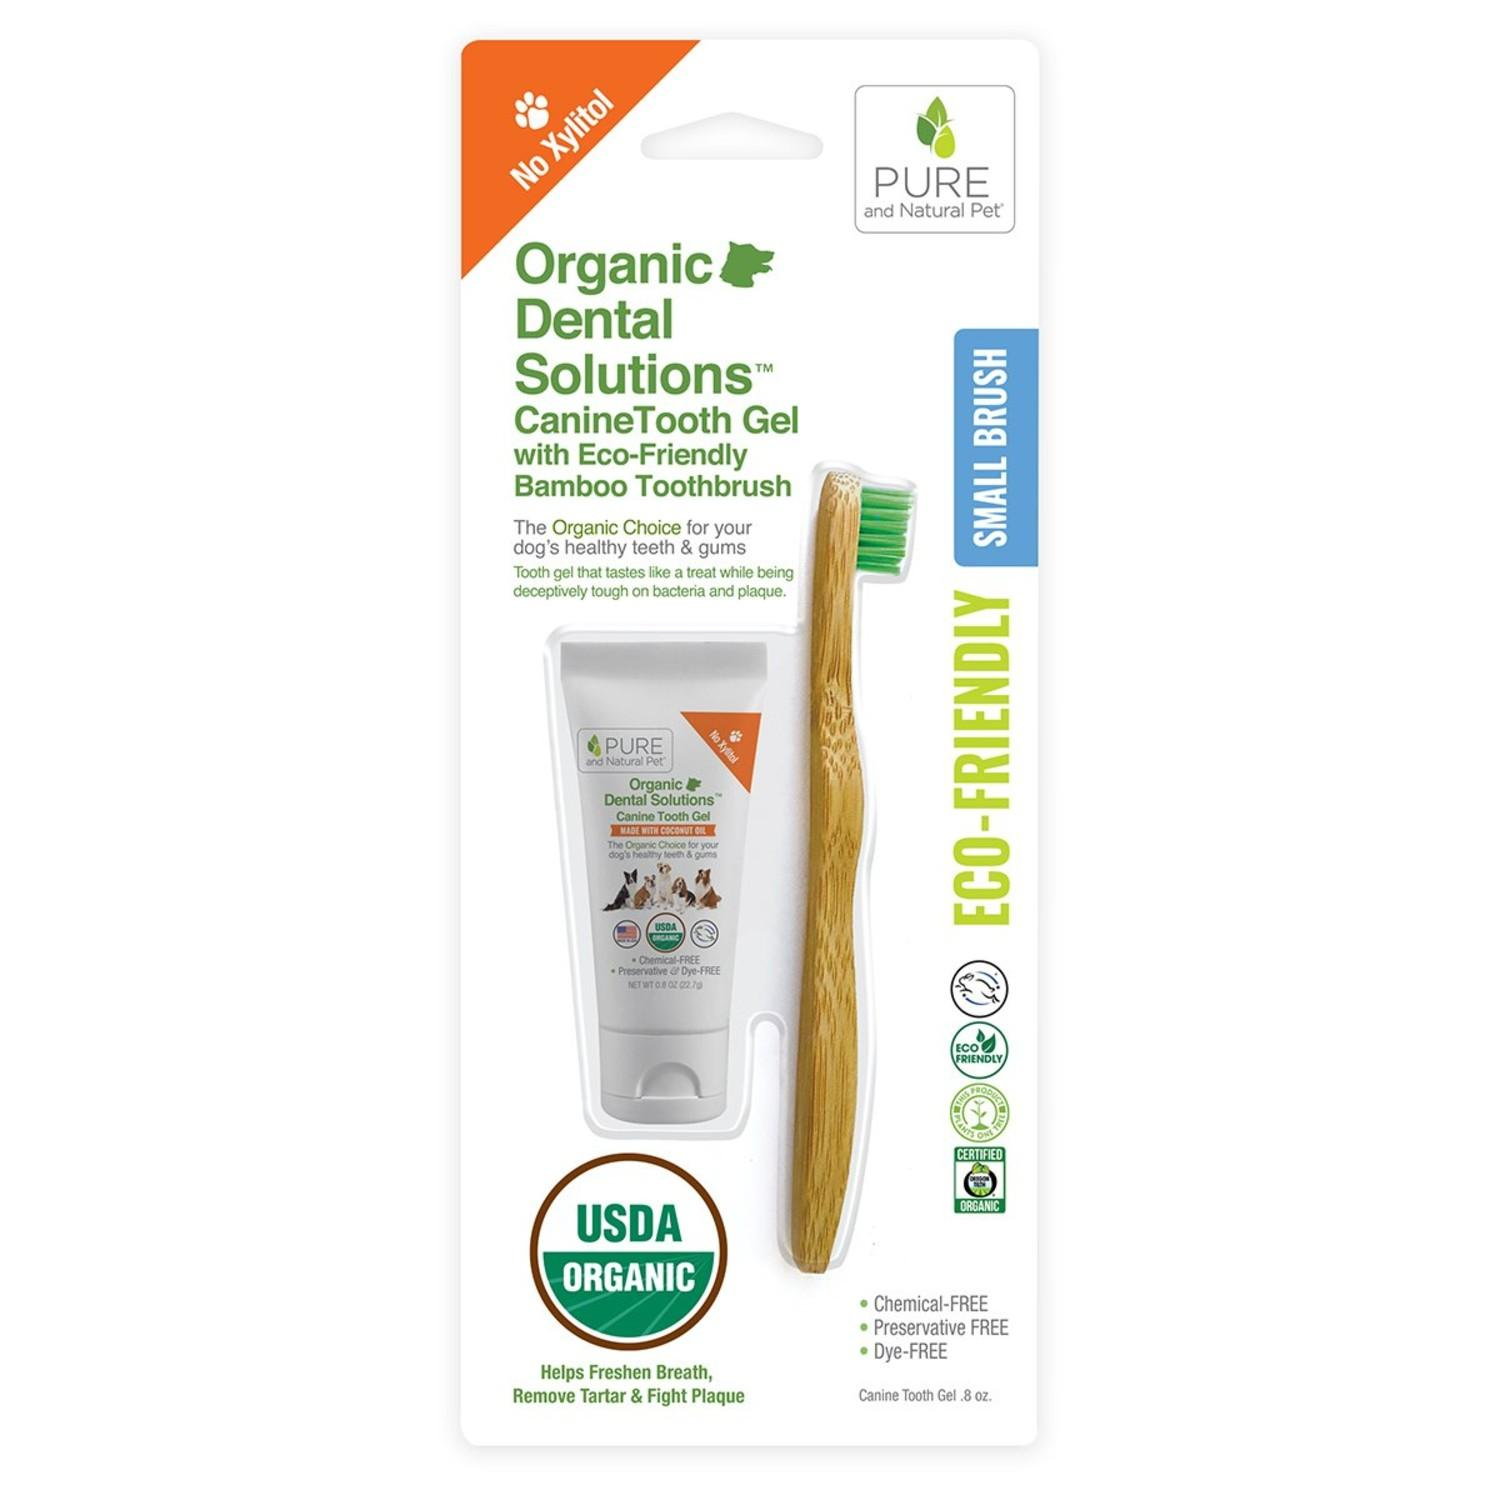 Pure and Natural Pet Organic Dental Solutions CanineTooth Gel with Bamboo Dog Toothbrush